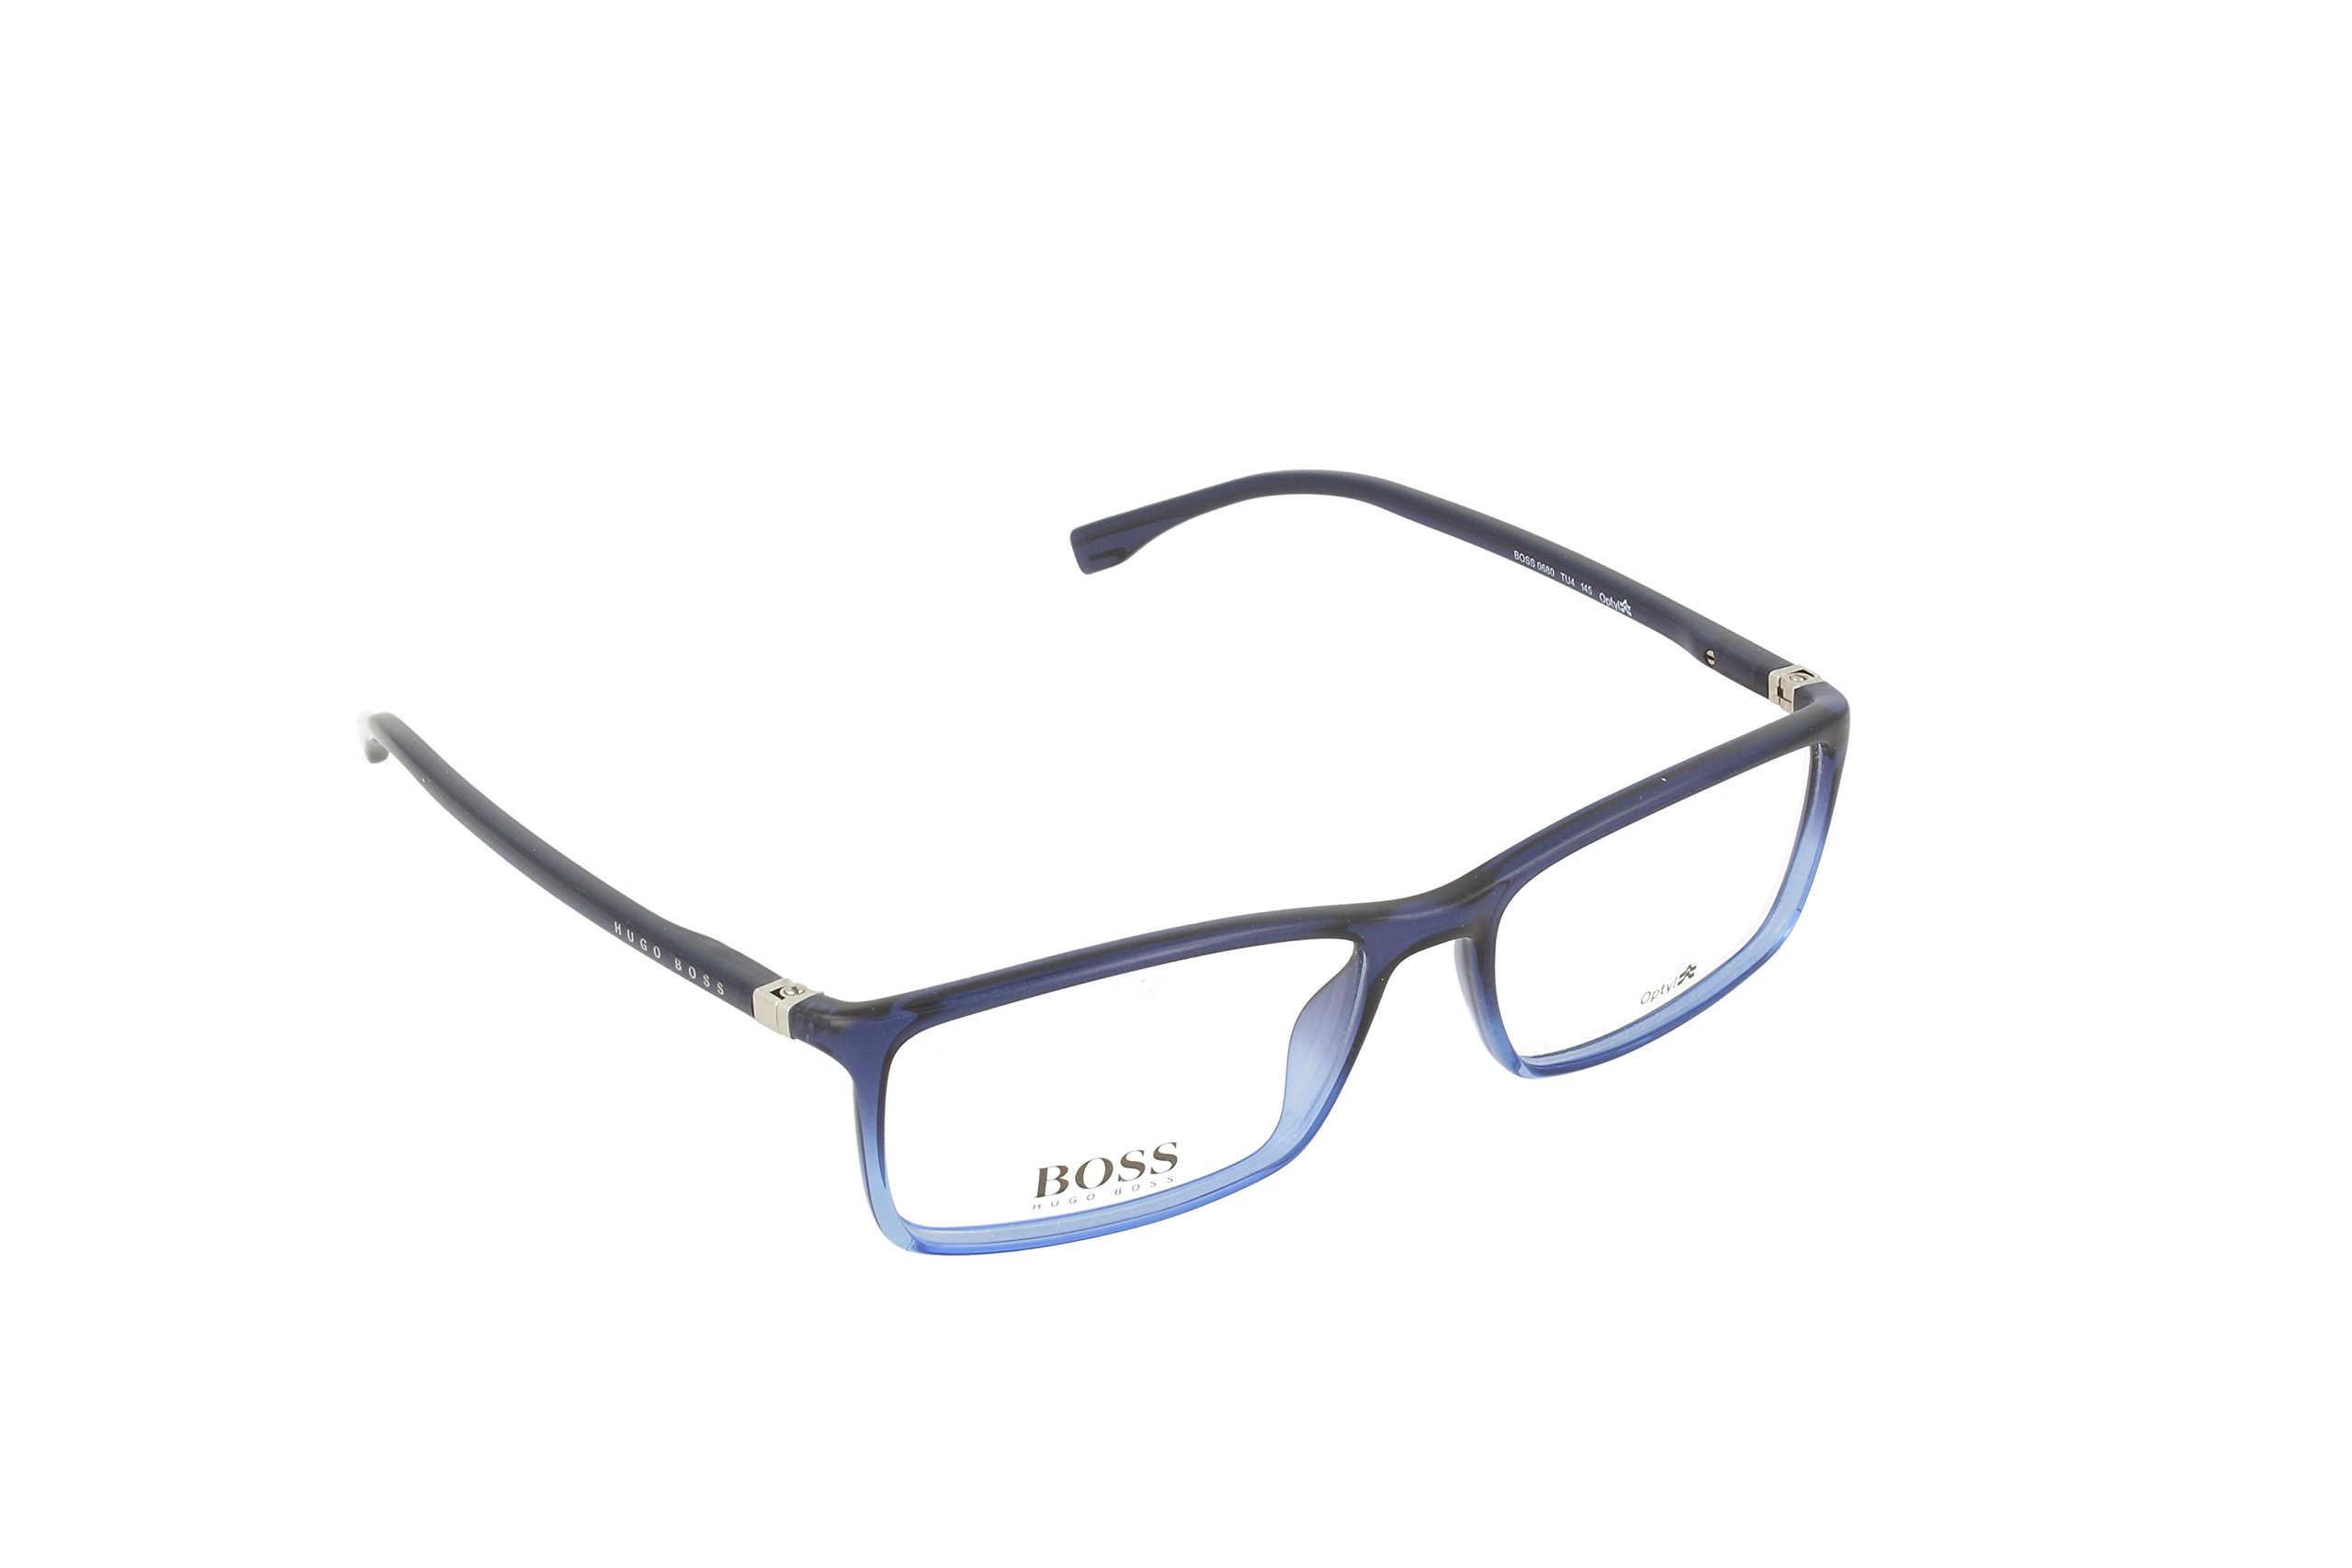 Hugo Boss eyeglasses BOSS 0680 TU4 Acetate Blue